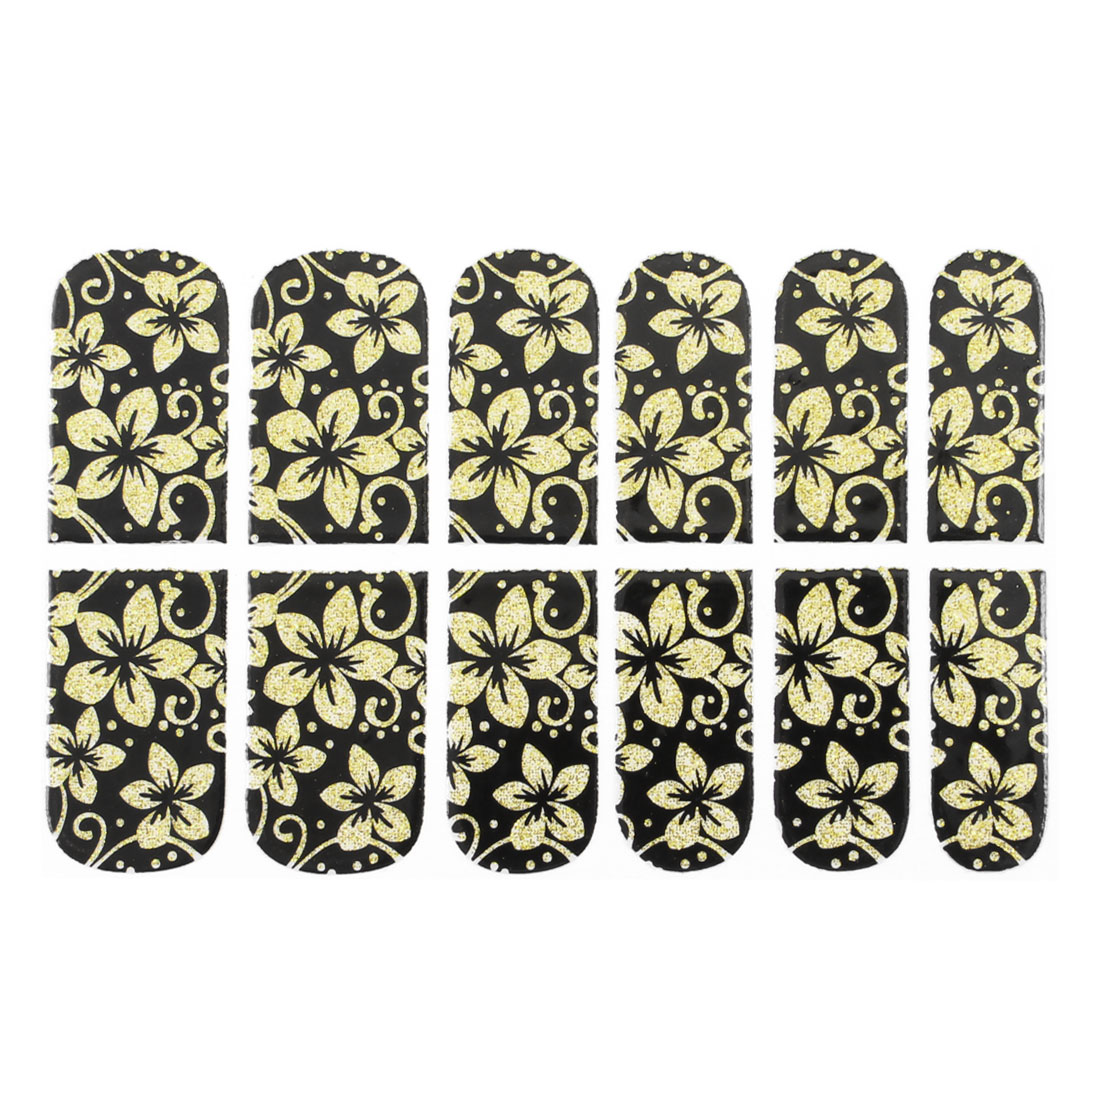 Black Bling Powder Detail Gold Tone Flower Printed Nail Foils 12 Pcs